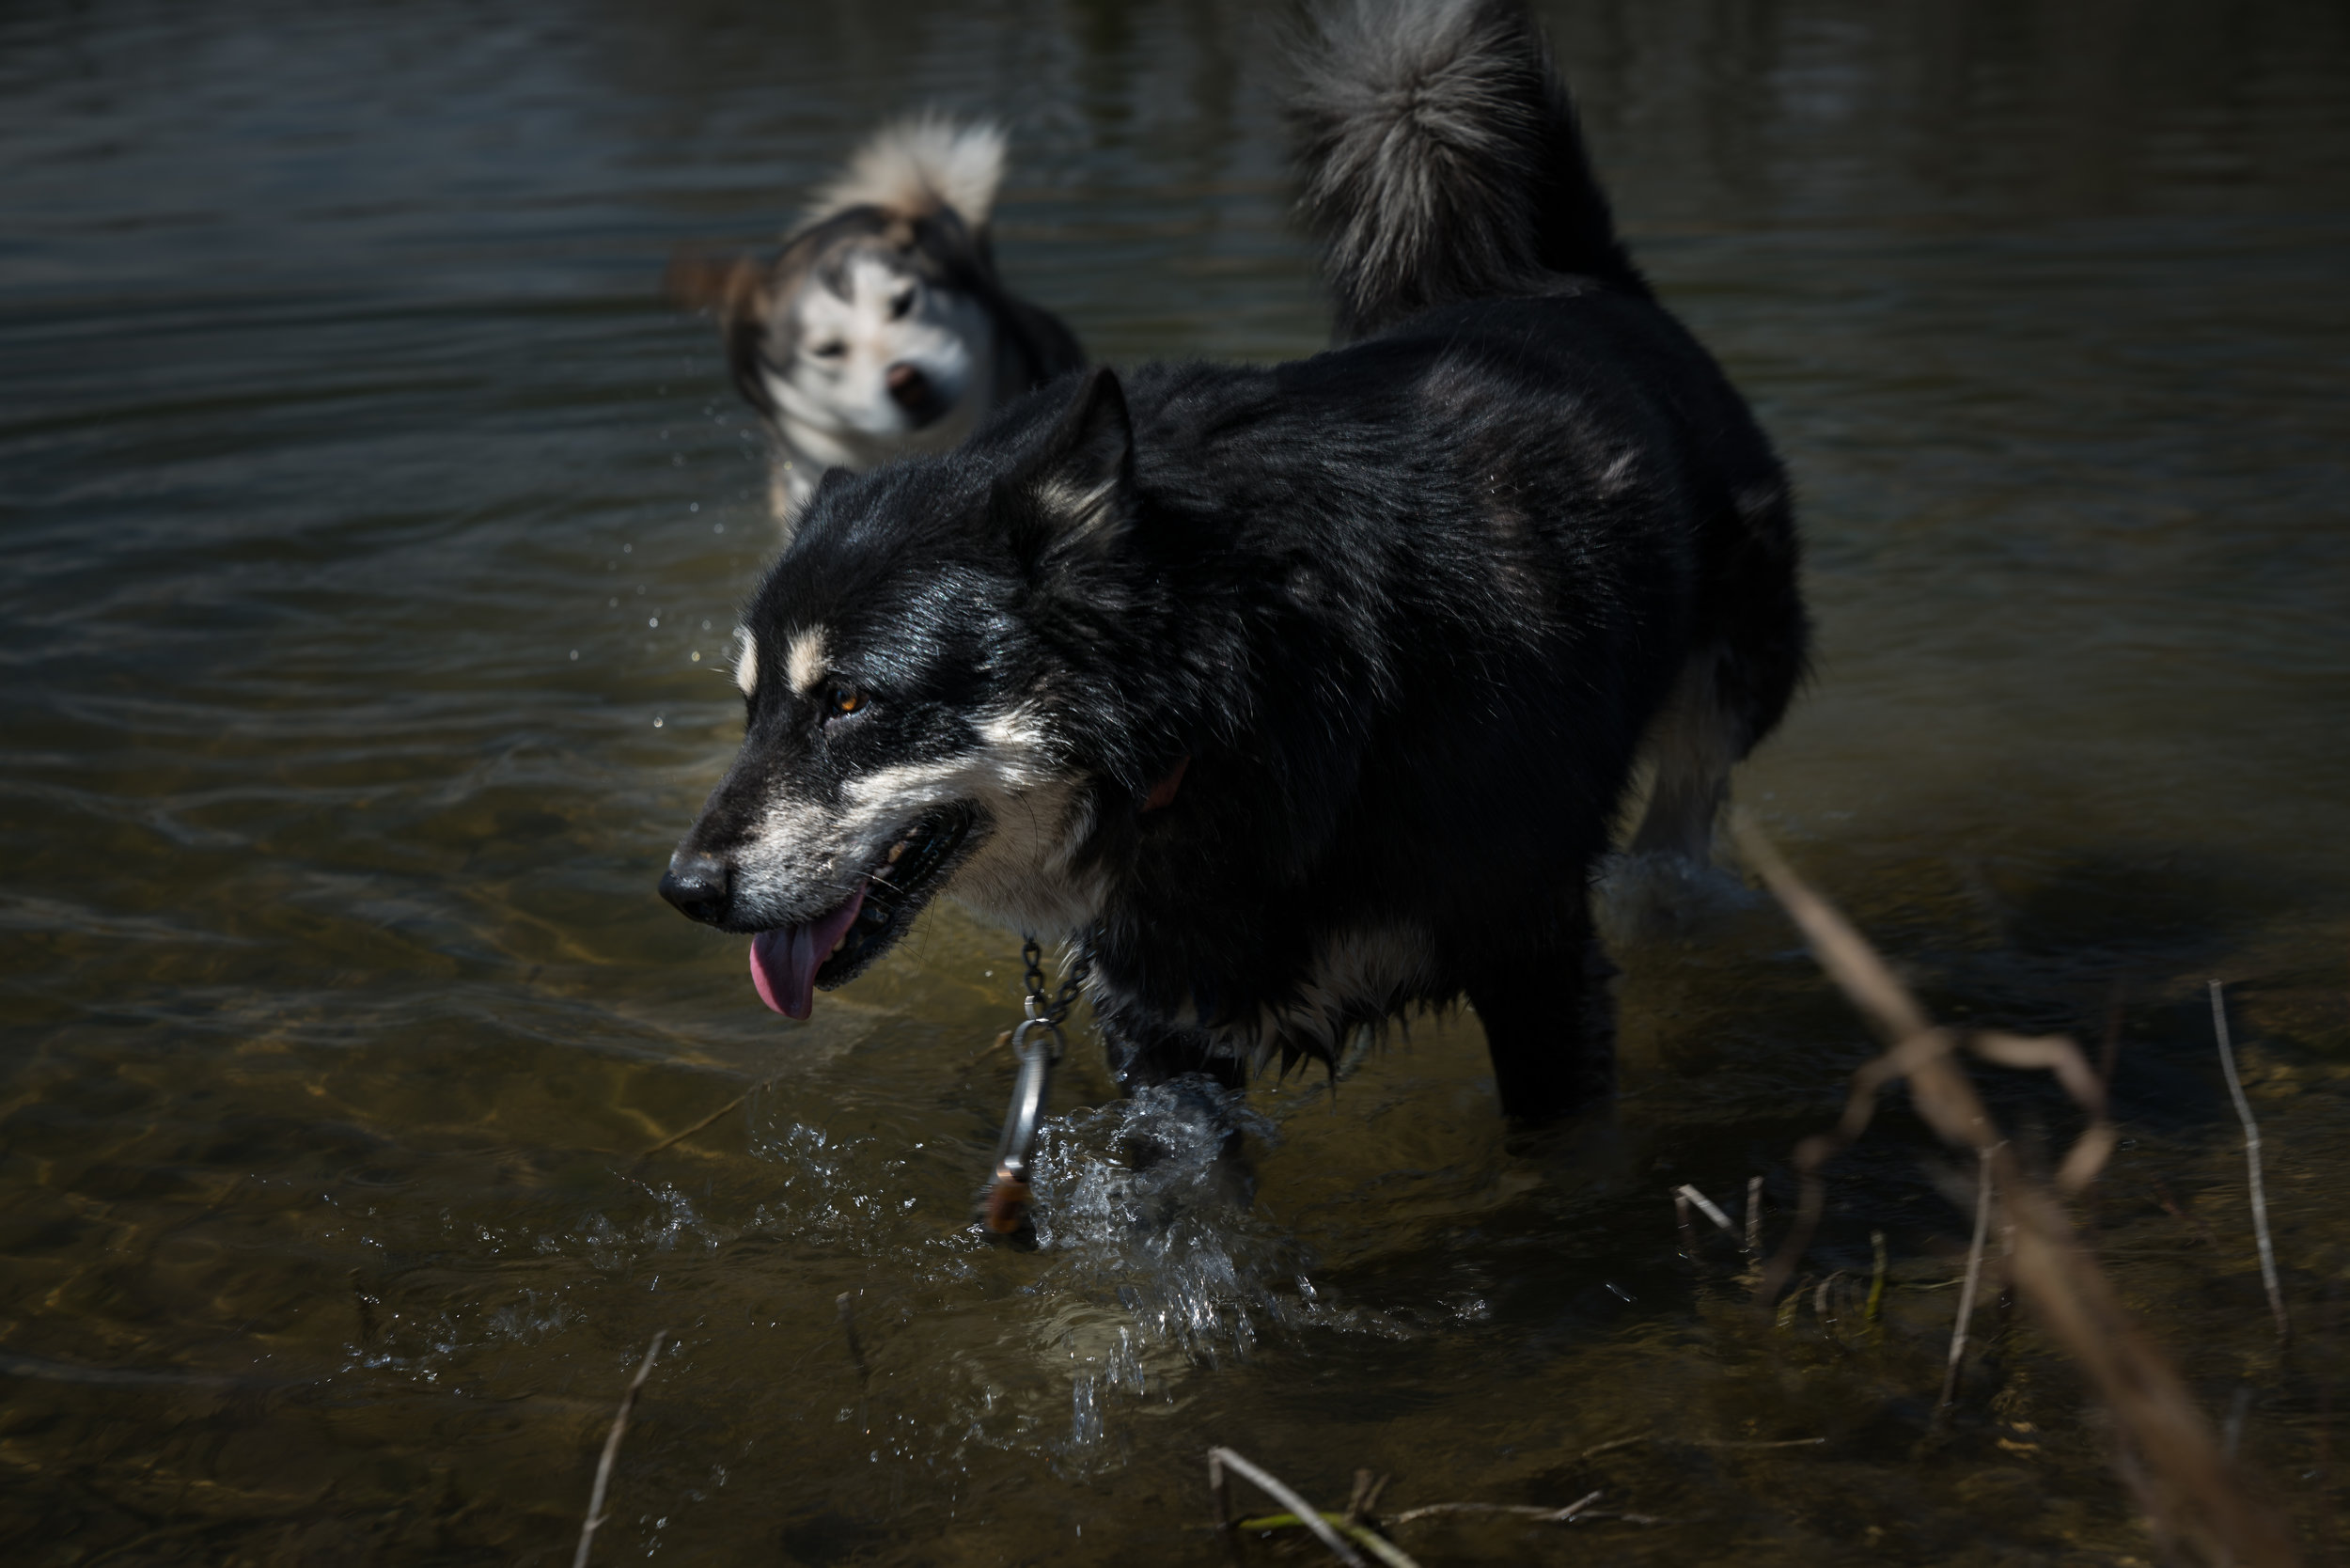 Dogs swimming via micahdeyoung.com